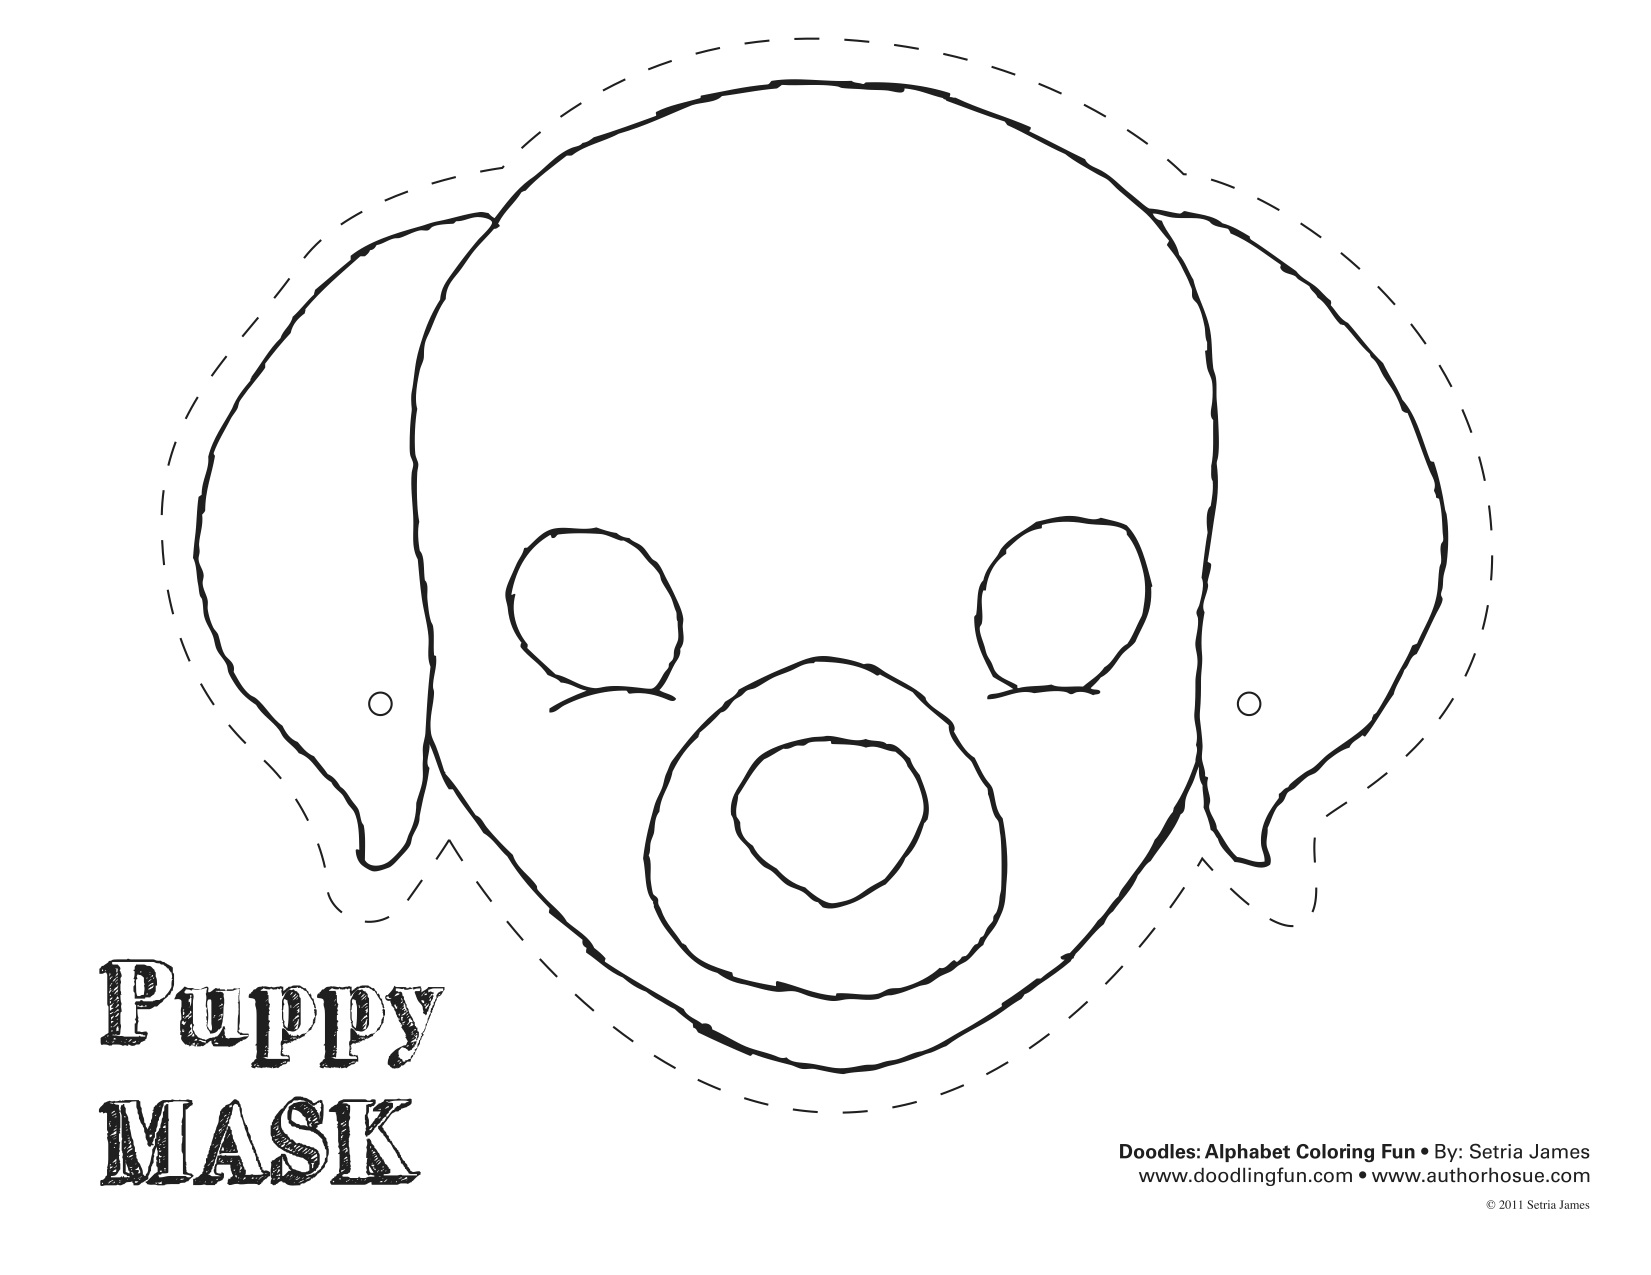 Puppy mask coloring page